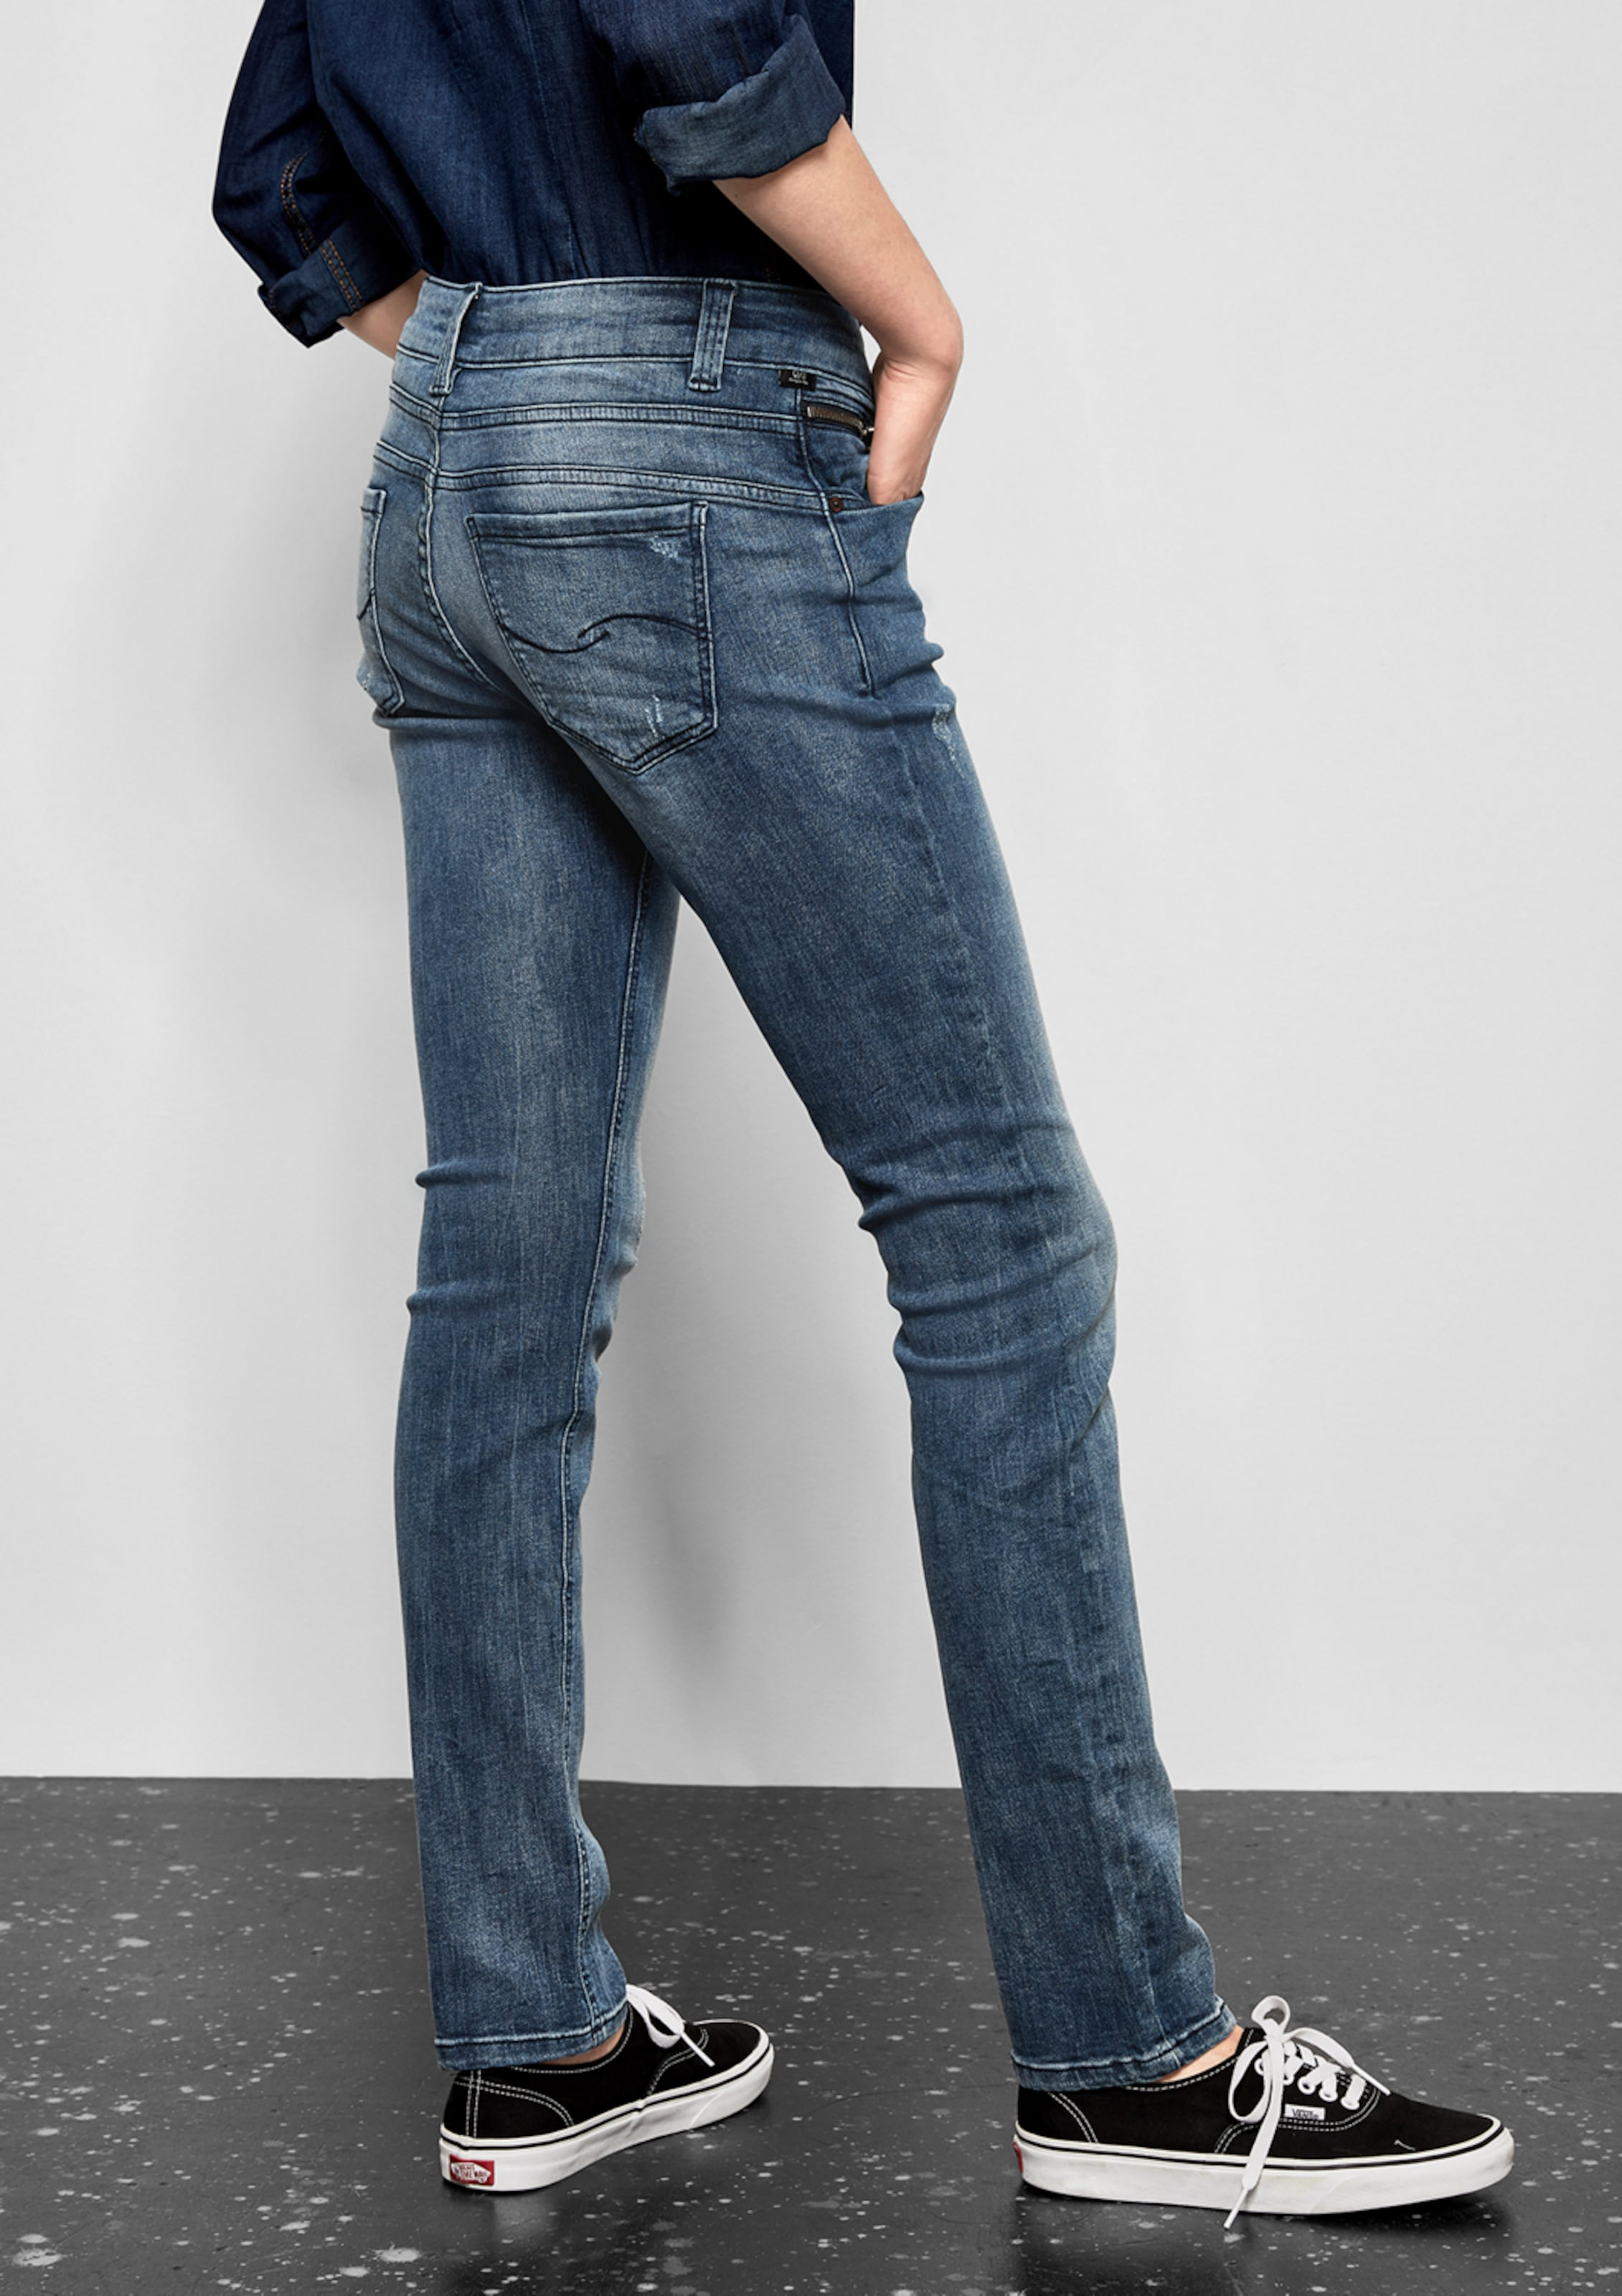 s Blue In Denim By Q Designed Jeans f76Ybgyv